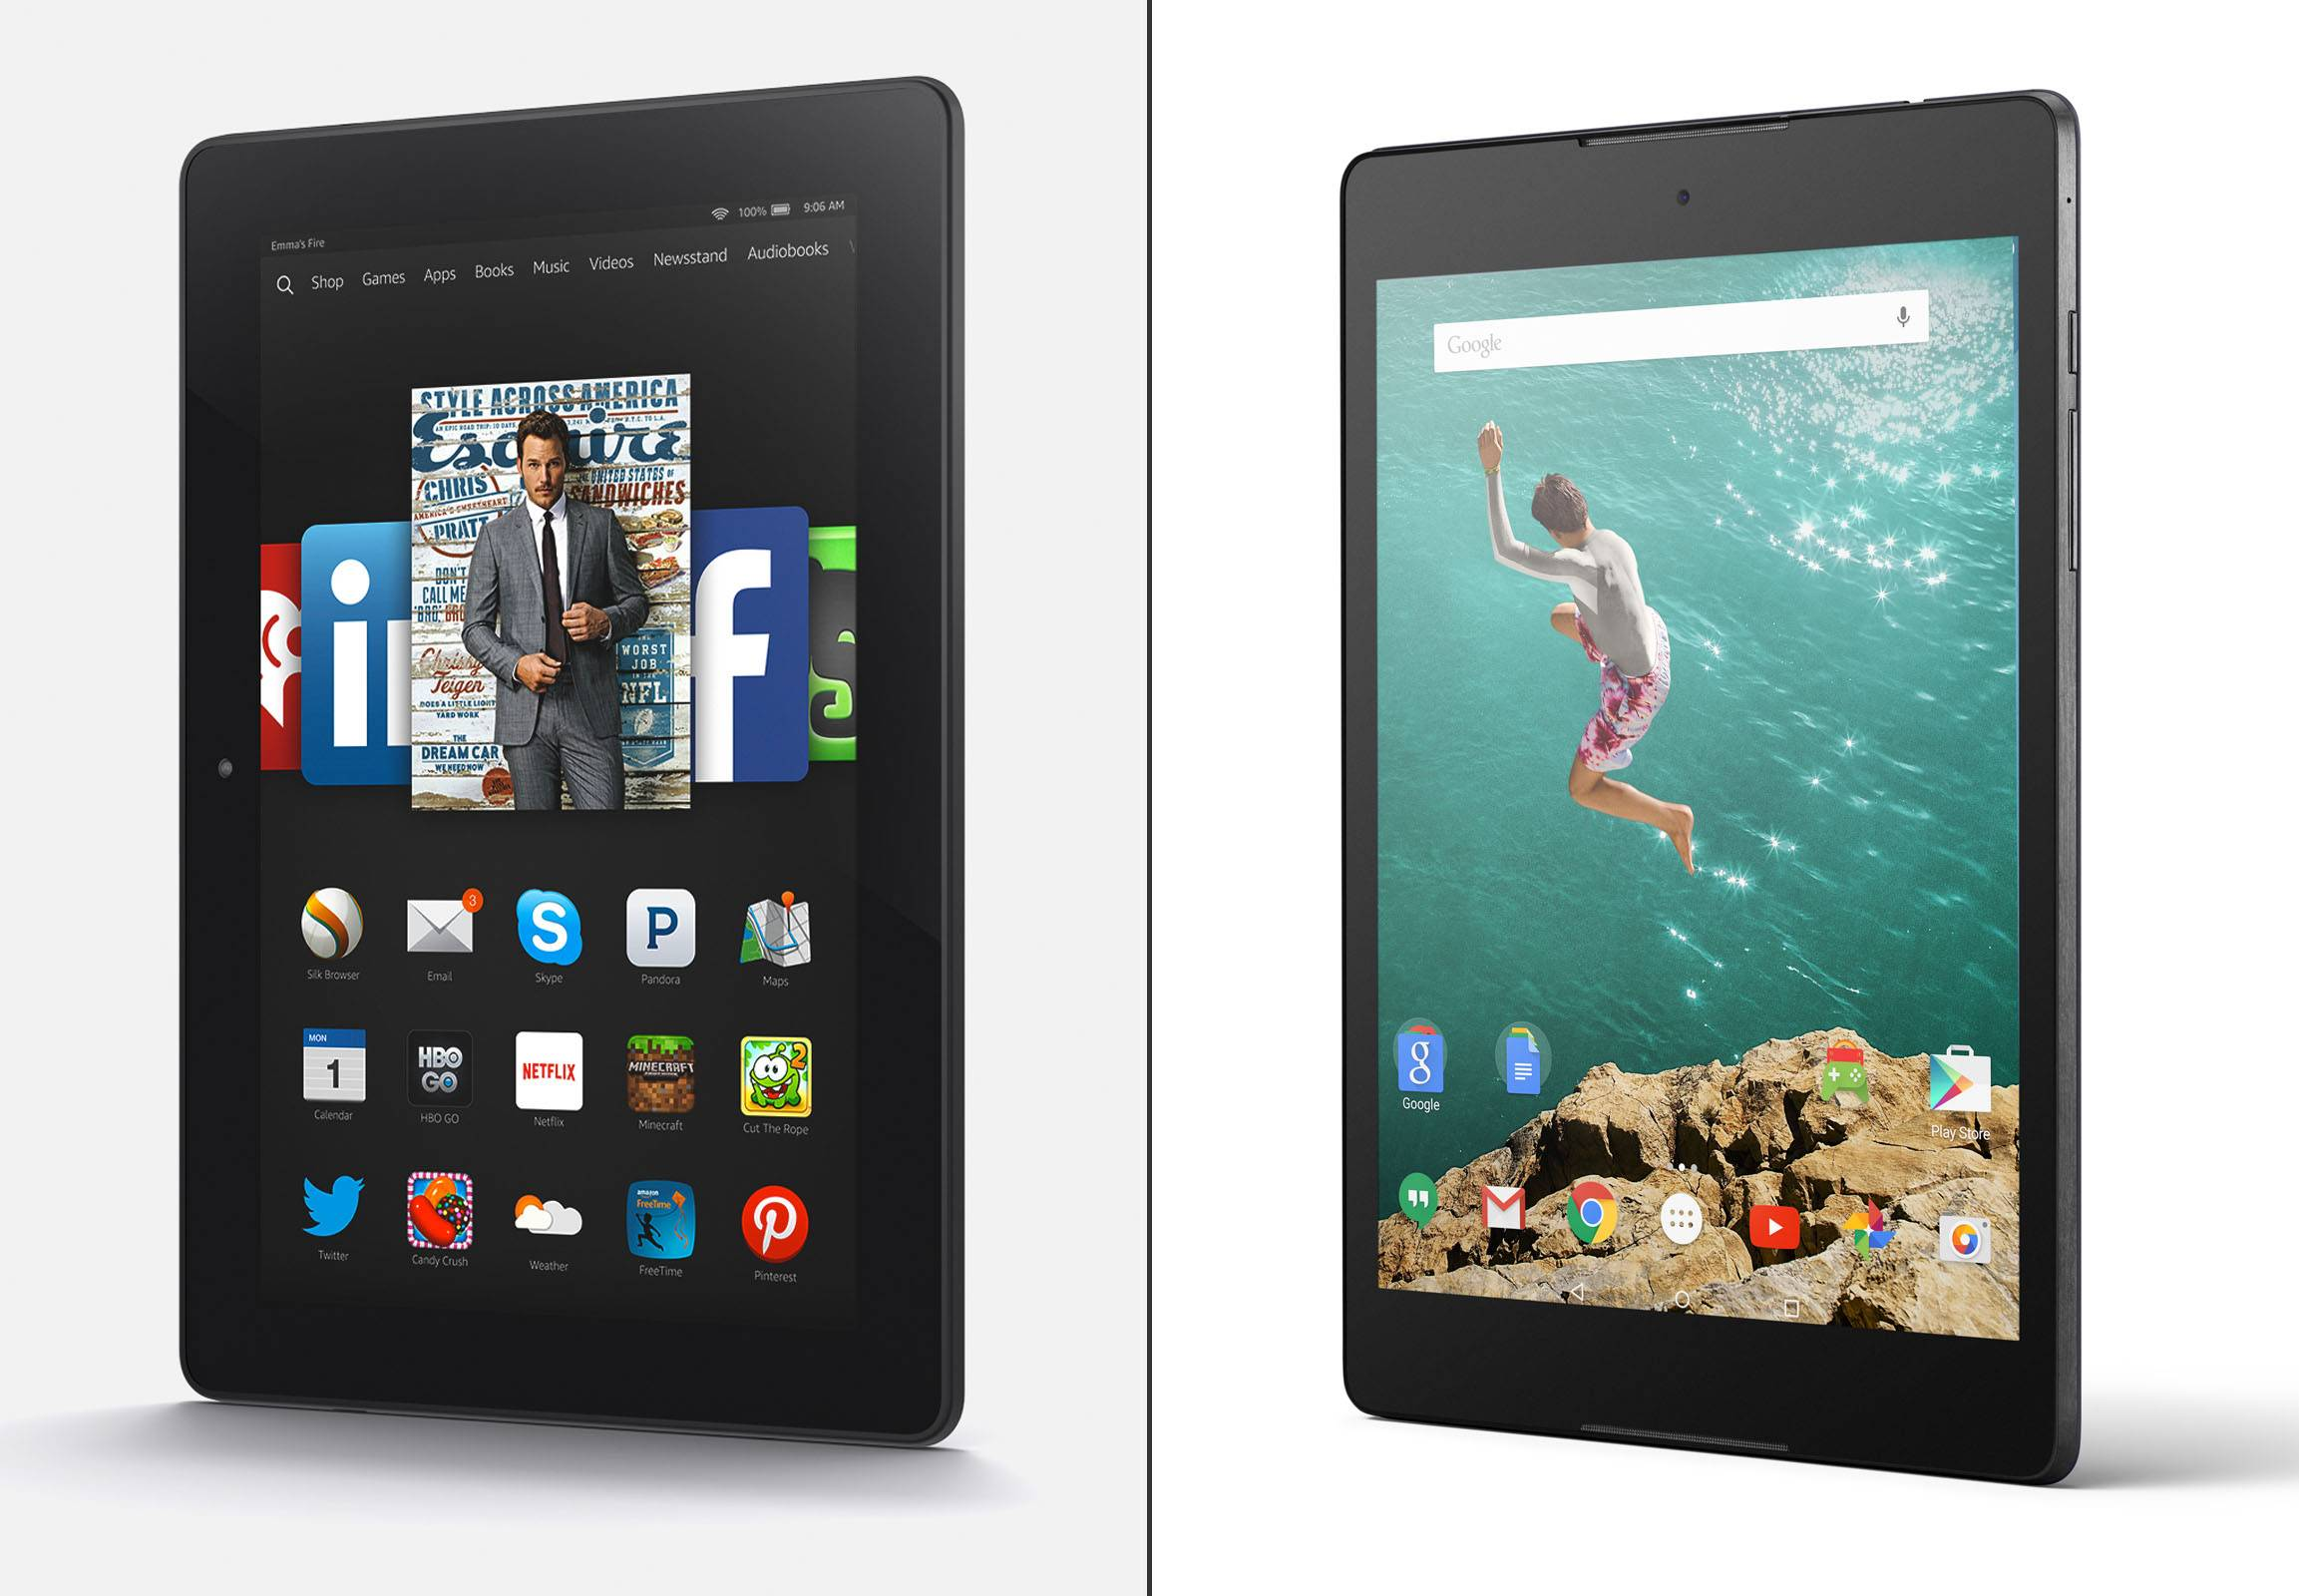 T-Mobile offers free 7-Inch tablet in pre-Black Friday deal